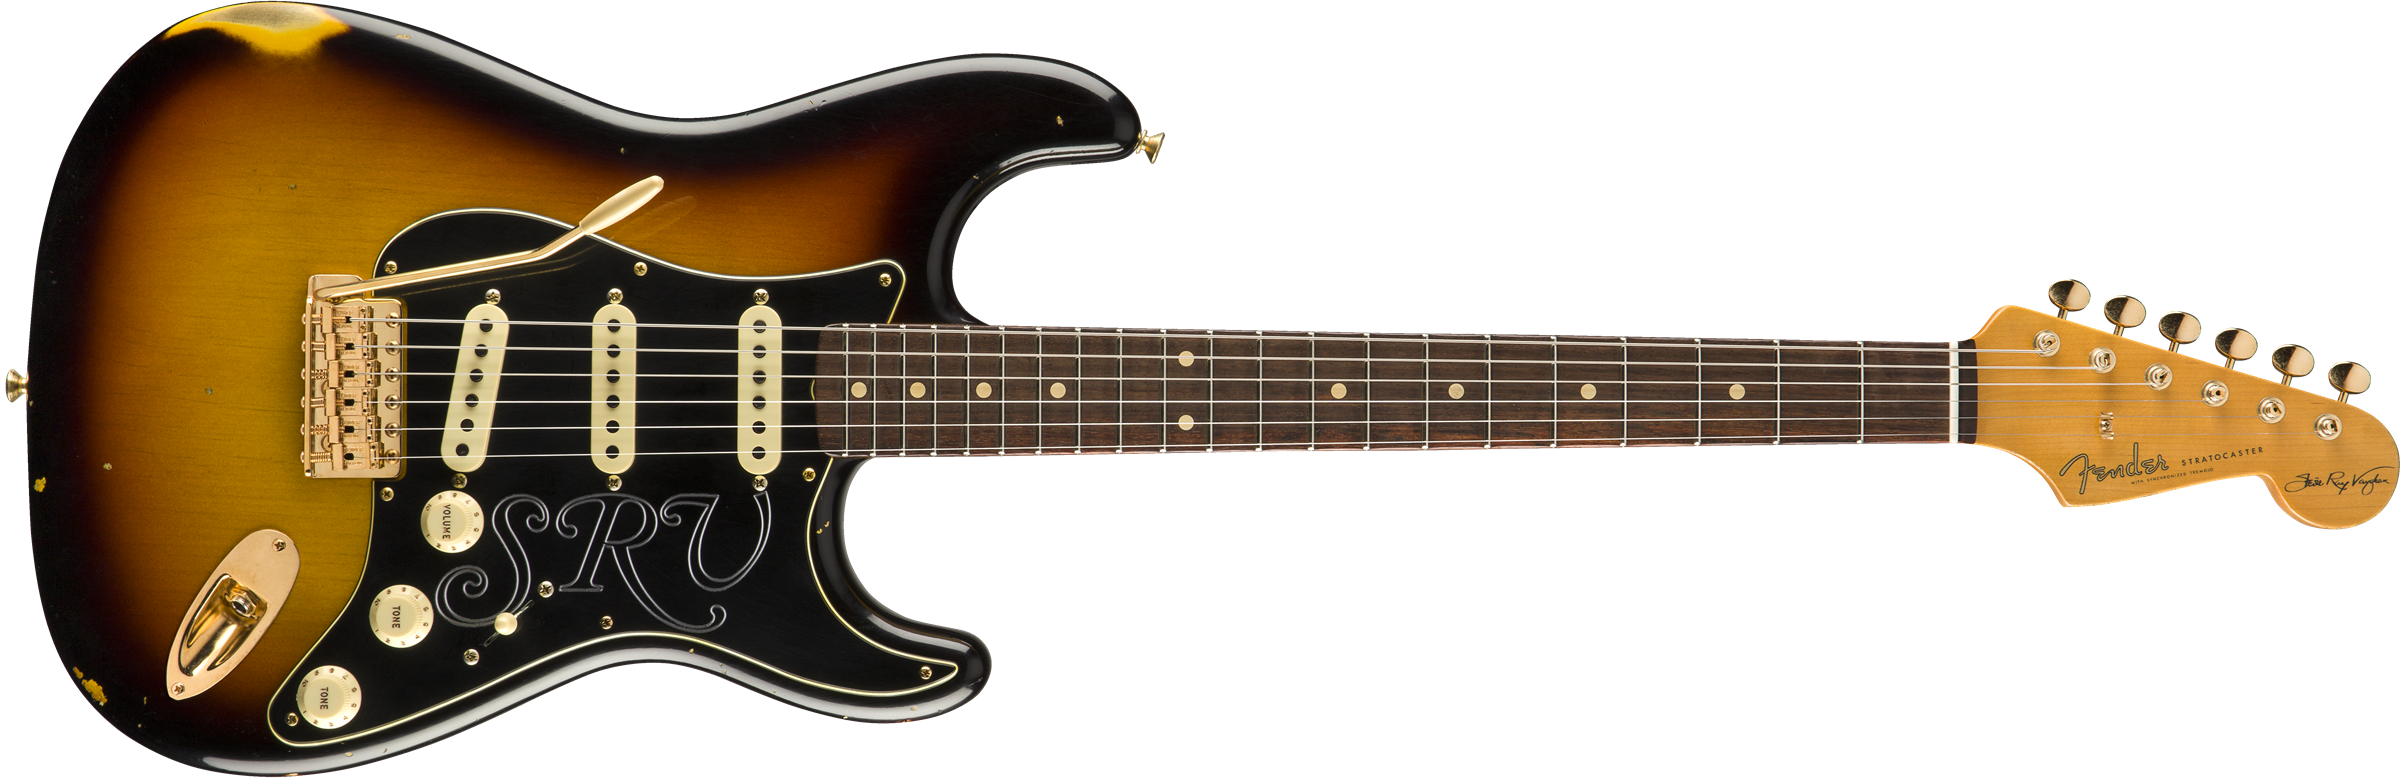 FENDER-Stevie-Ray-Vaughan-Signature-Stratocaster-Relic-Rosewood-Fingerboard-Faded-3-Color-Sunburst-sku-571004334